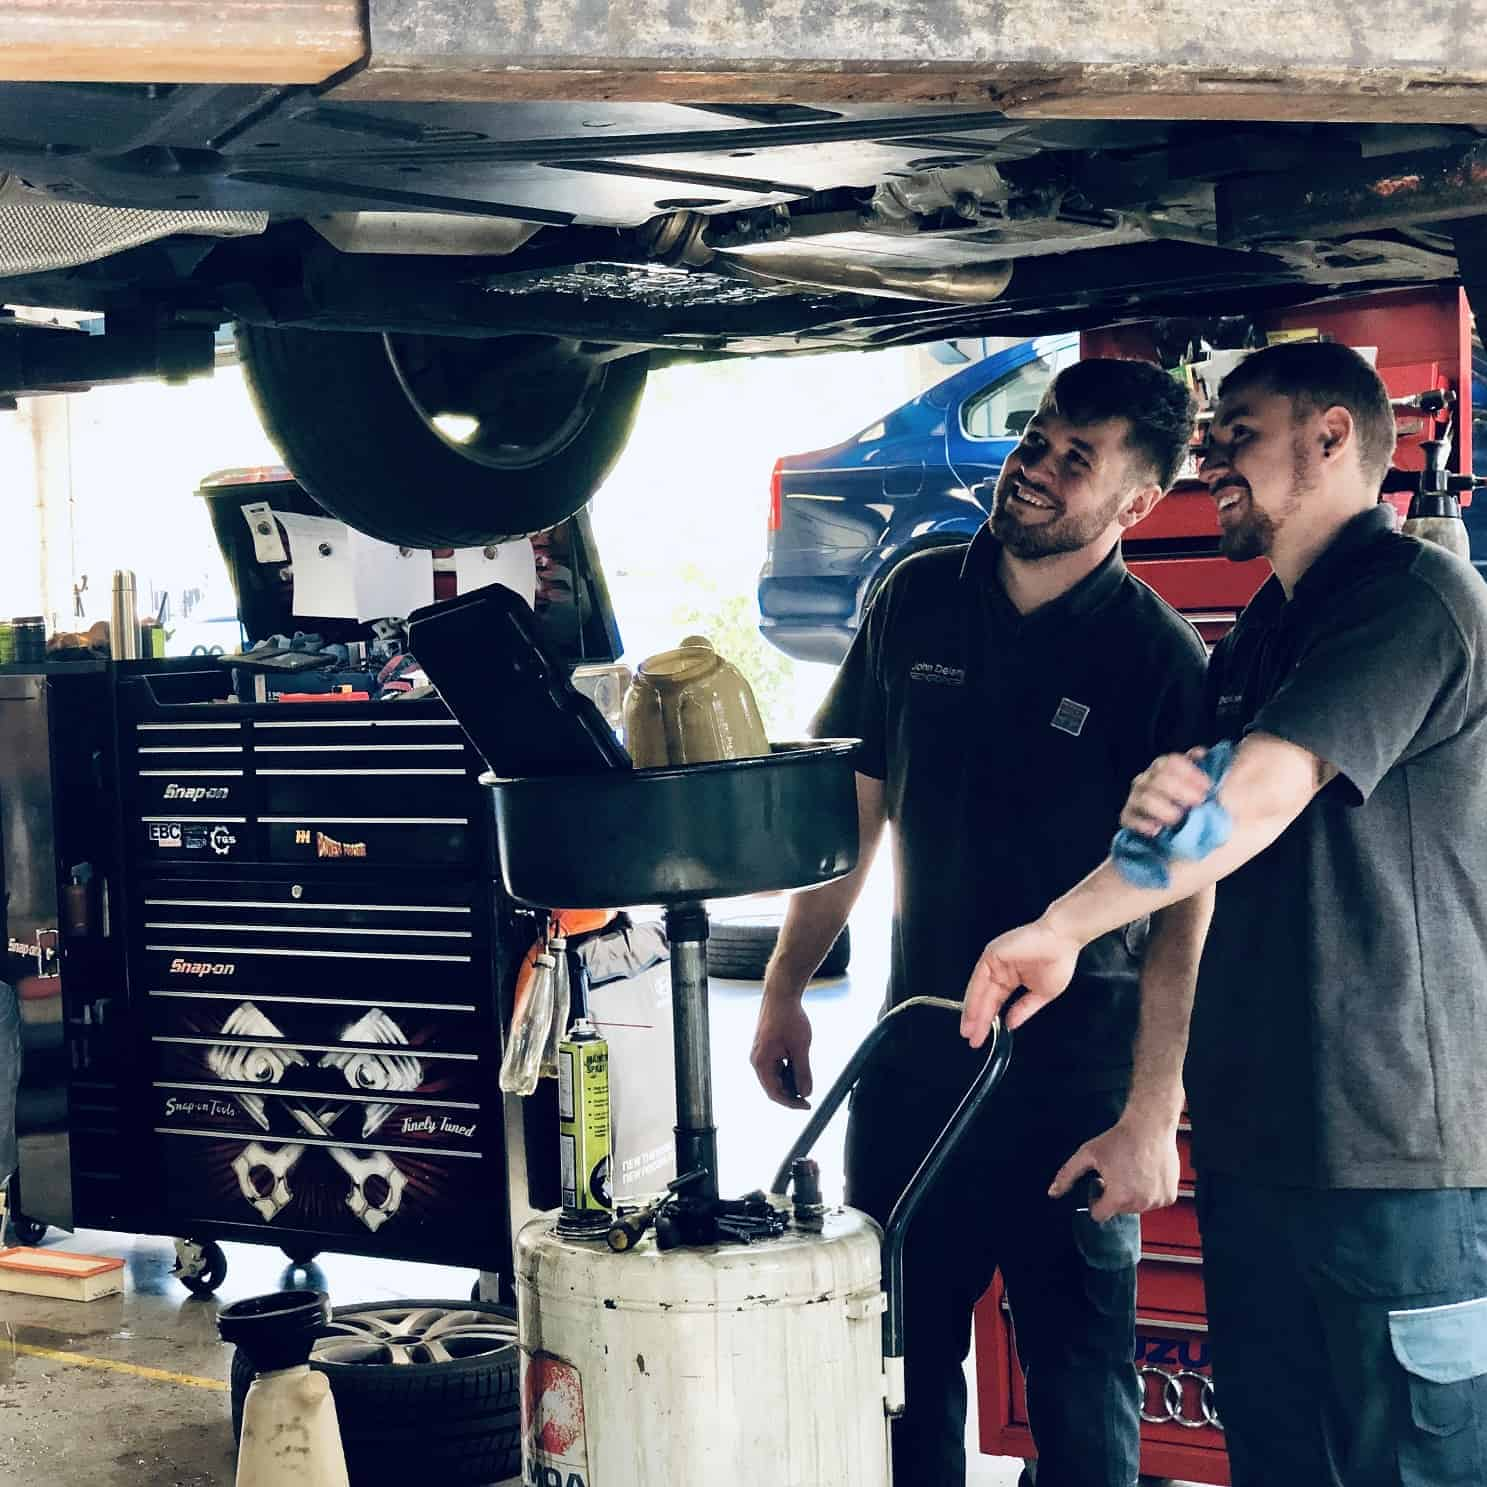 vehicle technicians at work